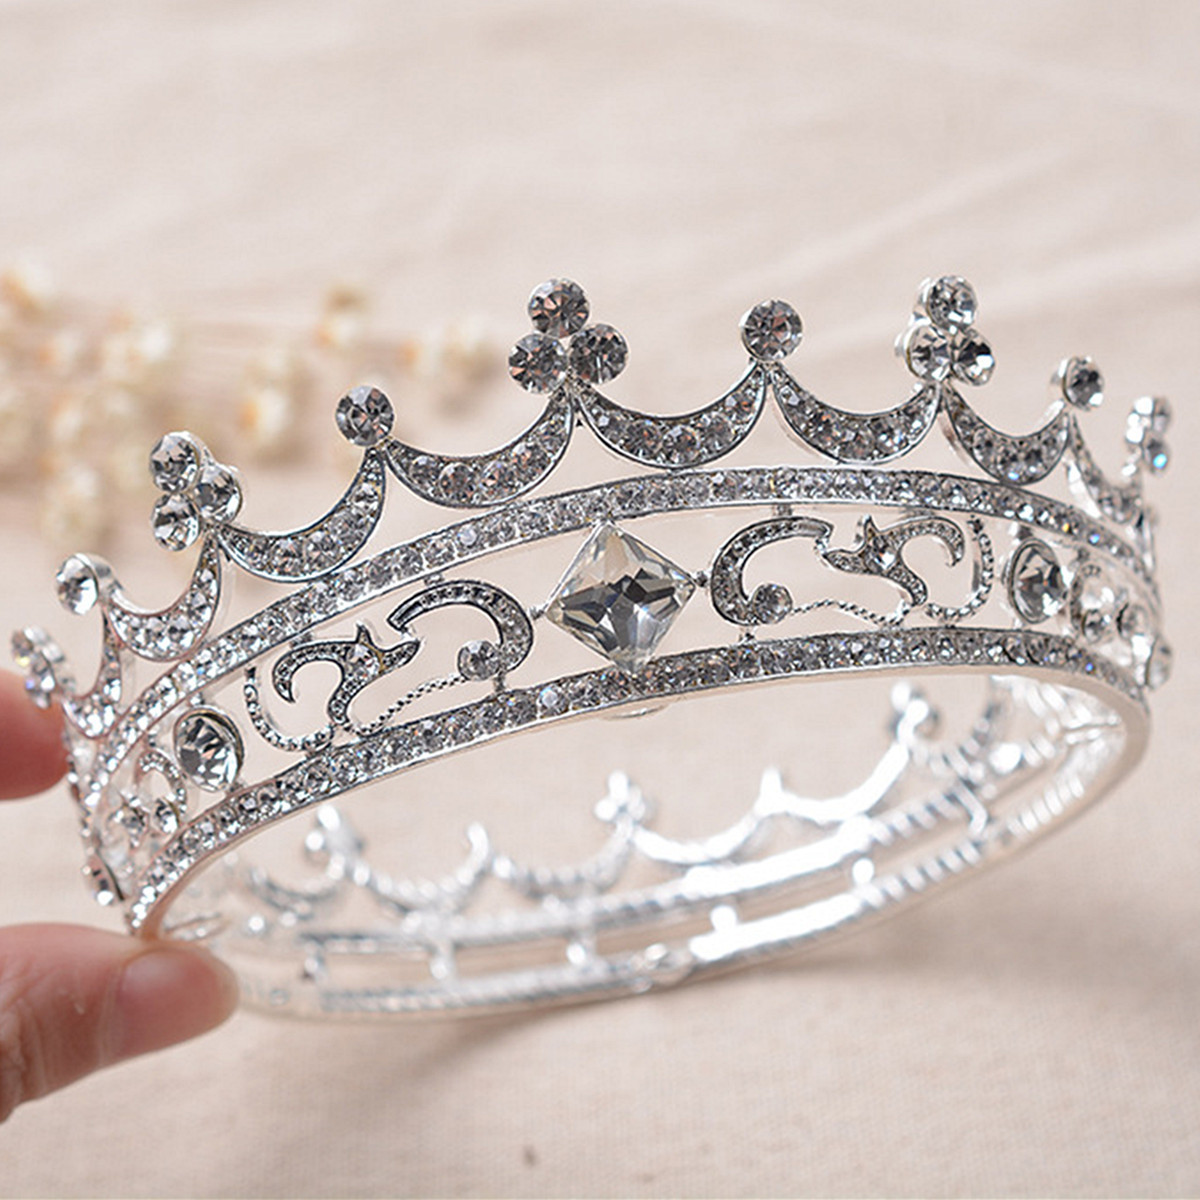 Bride Rhinestone Crystal Crown Tiara Head Jewelry Princess Queen Headpiece Wedding Accessories